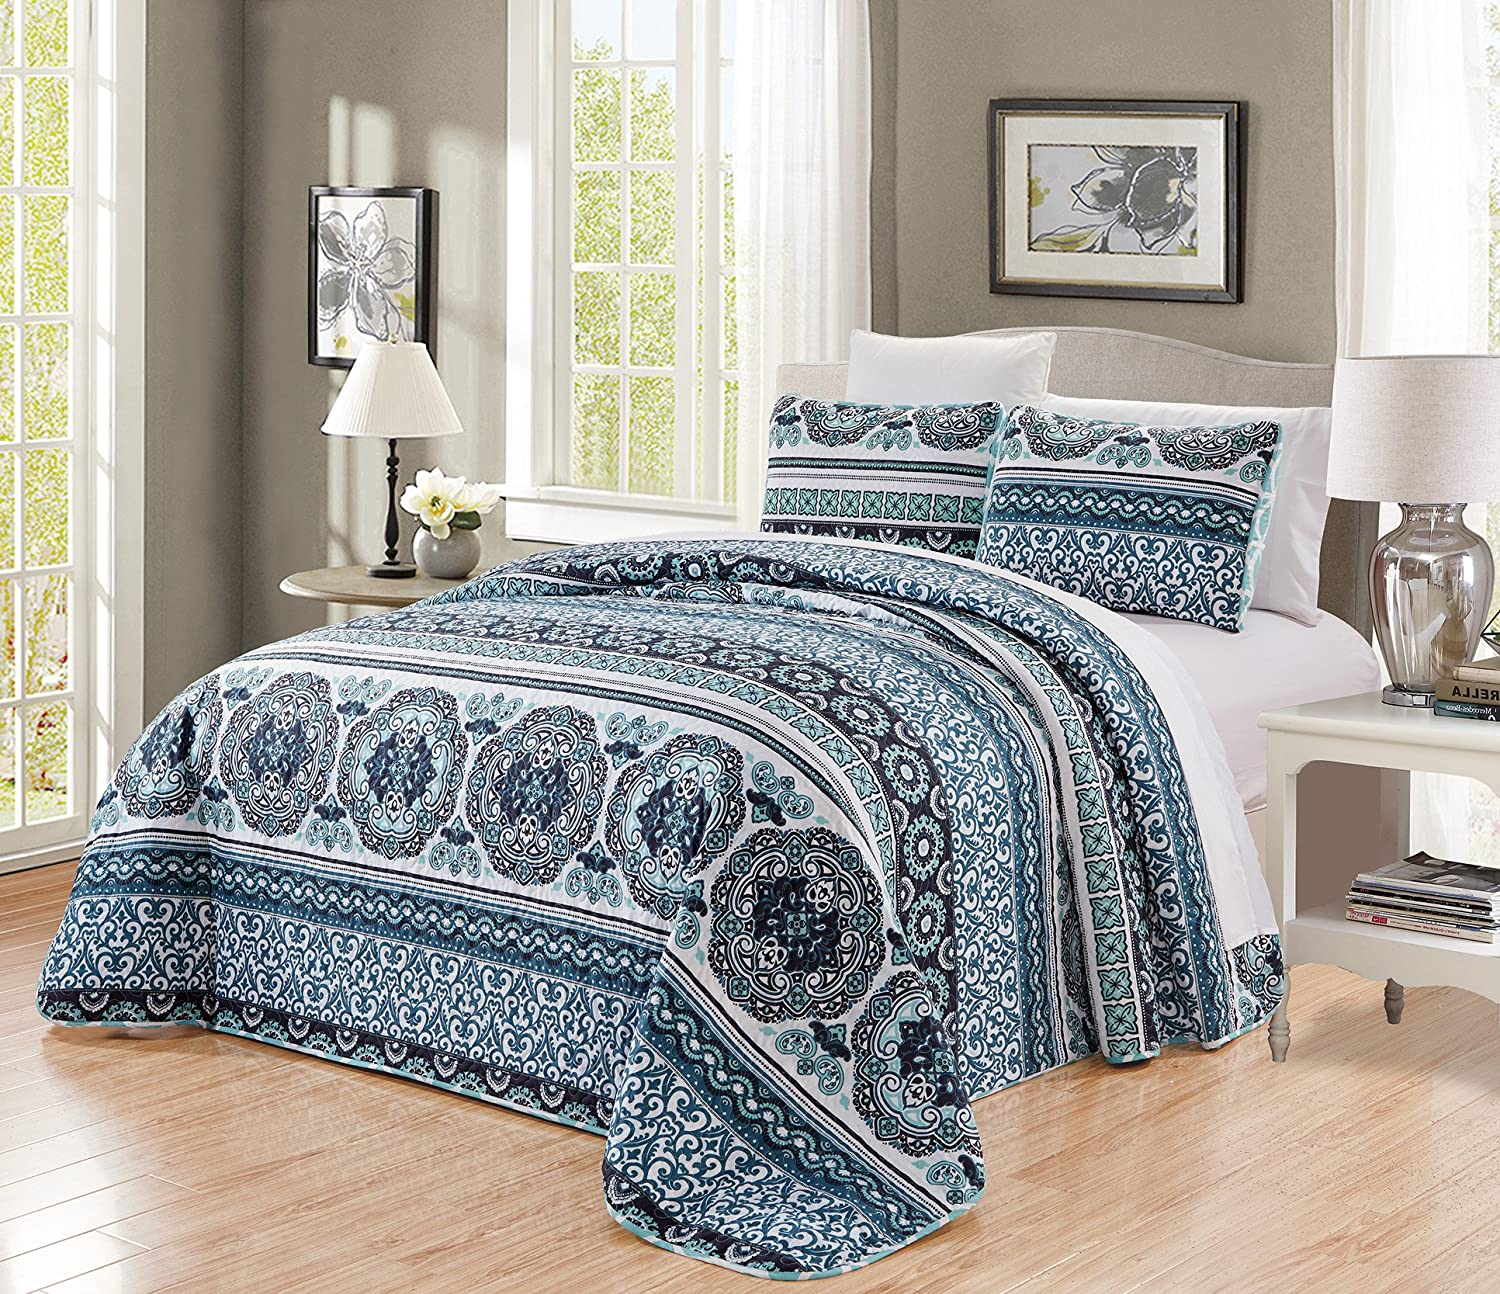 GrandLinen 3-Piece Fine Outlet ☆ Free Shipping Printed Oversize Sales of SALE items from new works 95